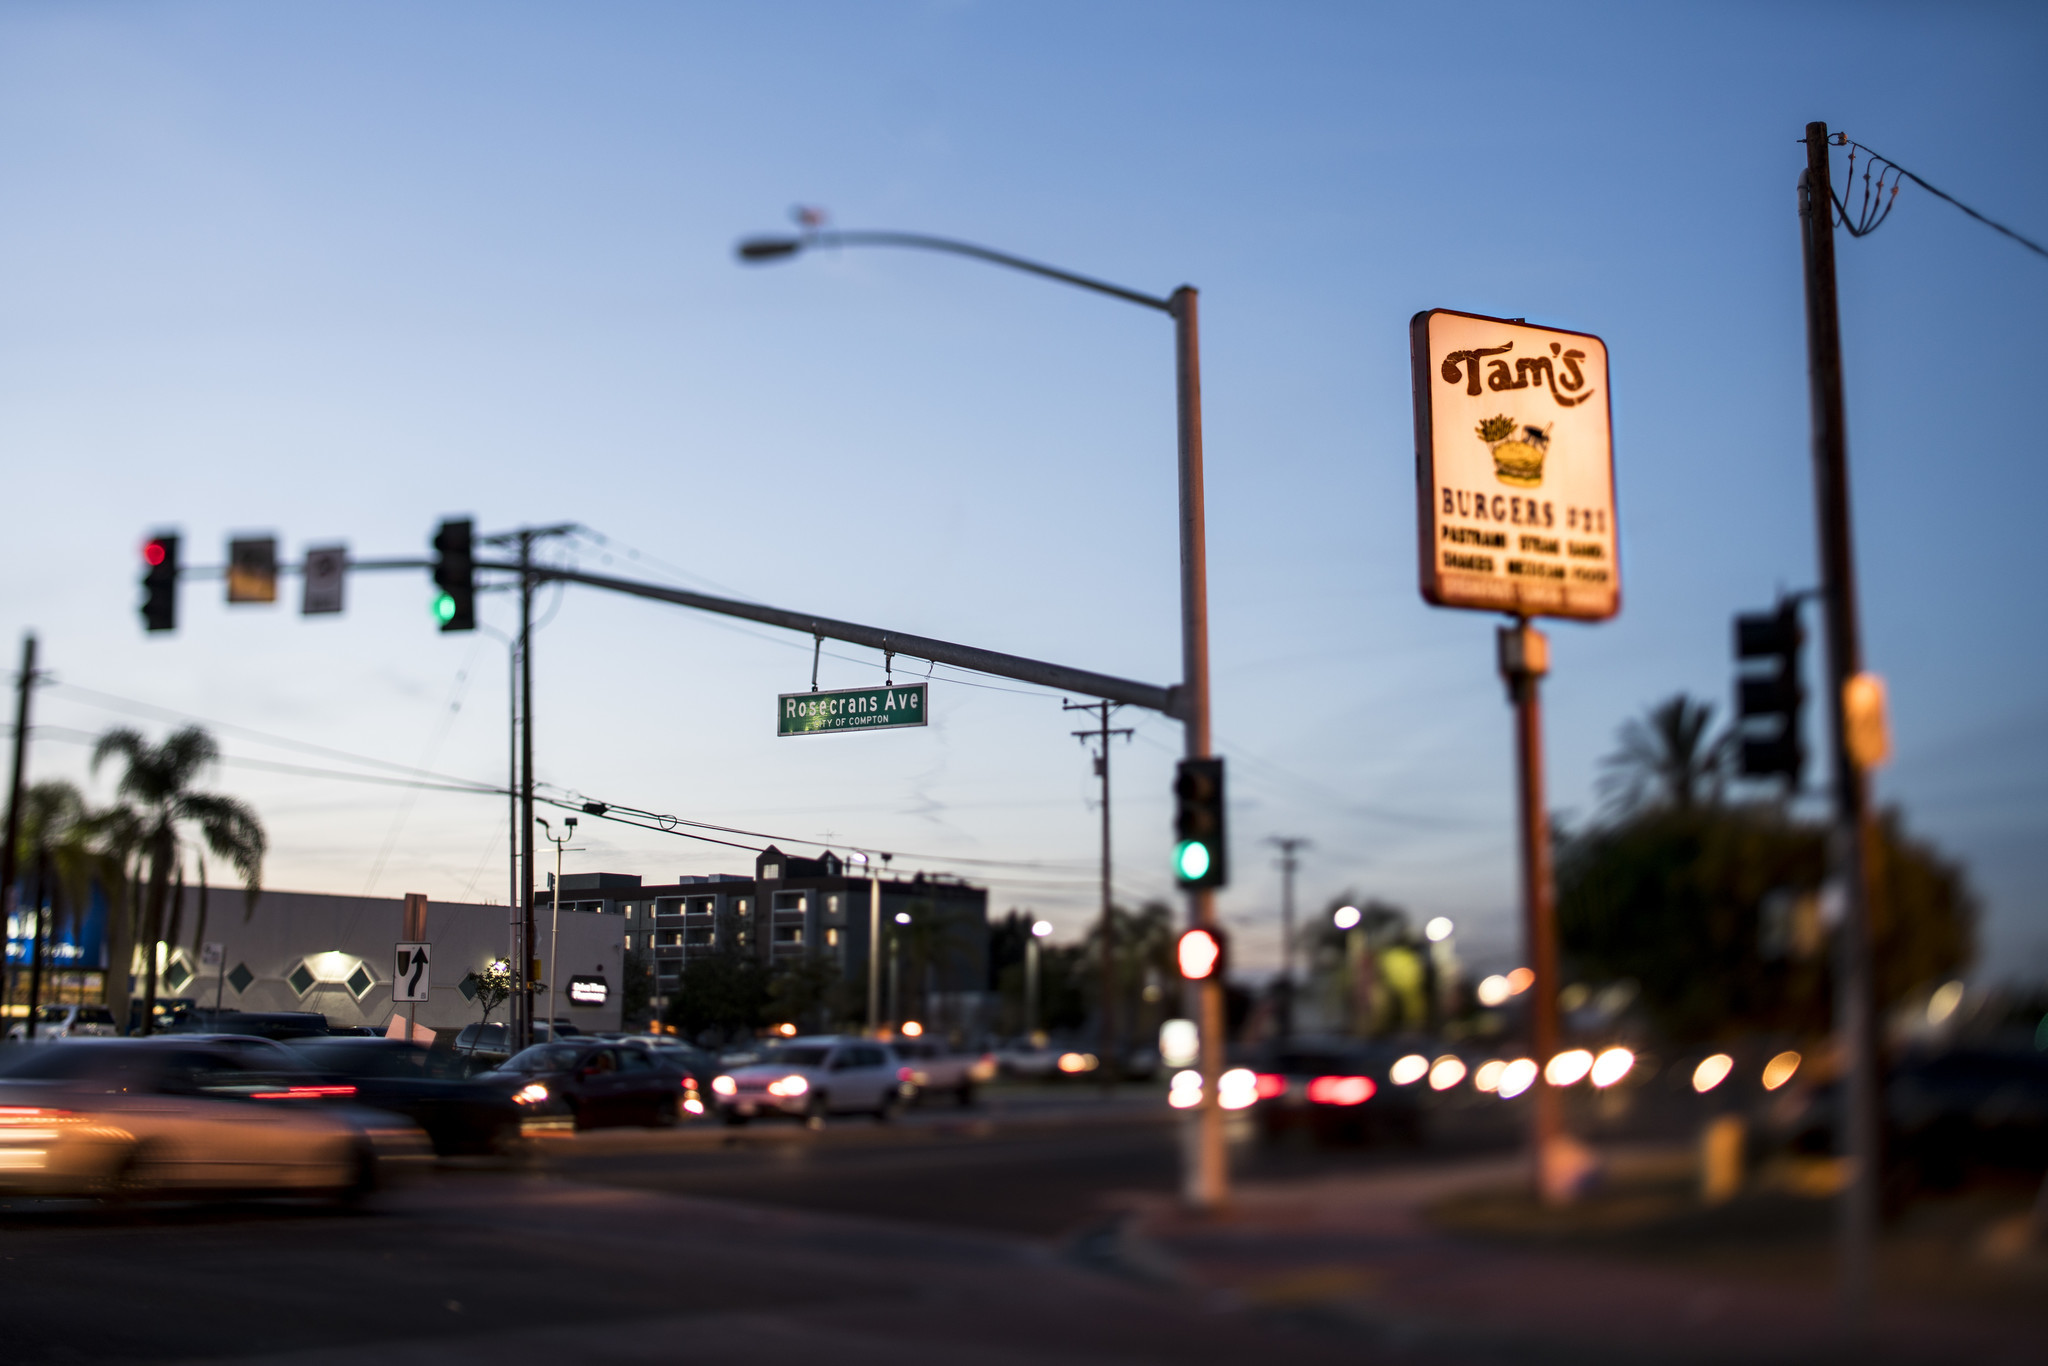 Tam's Burgers on Rosecrans Avenue, which cuts through South L.A. and Compton. (Kent Nishimura / Los Angeles Times)